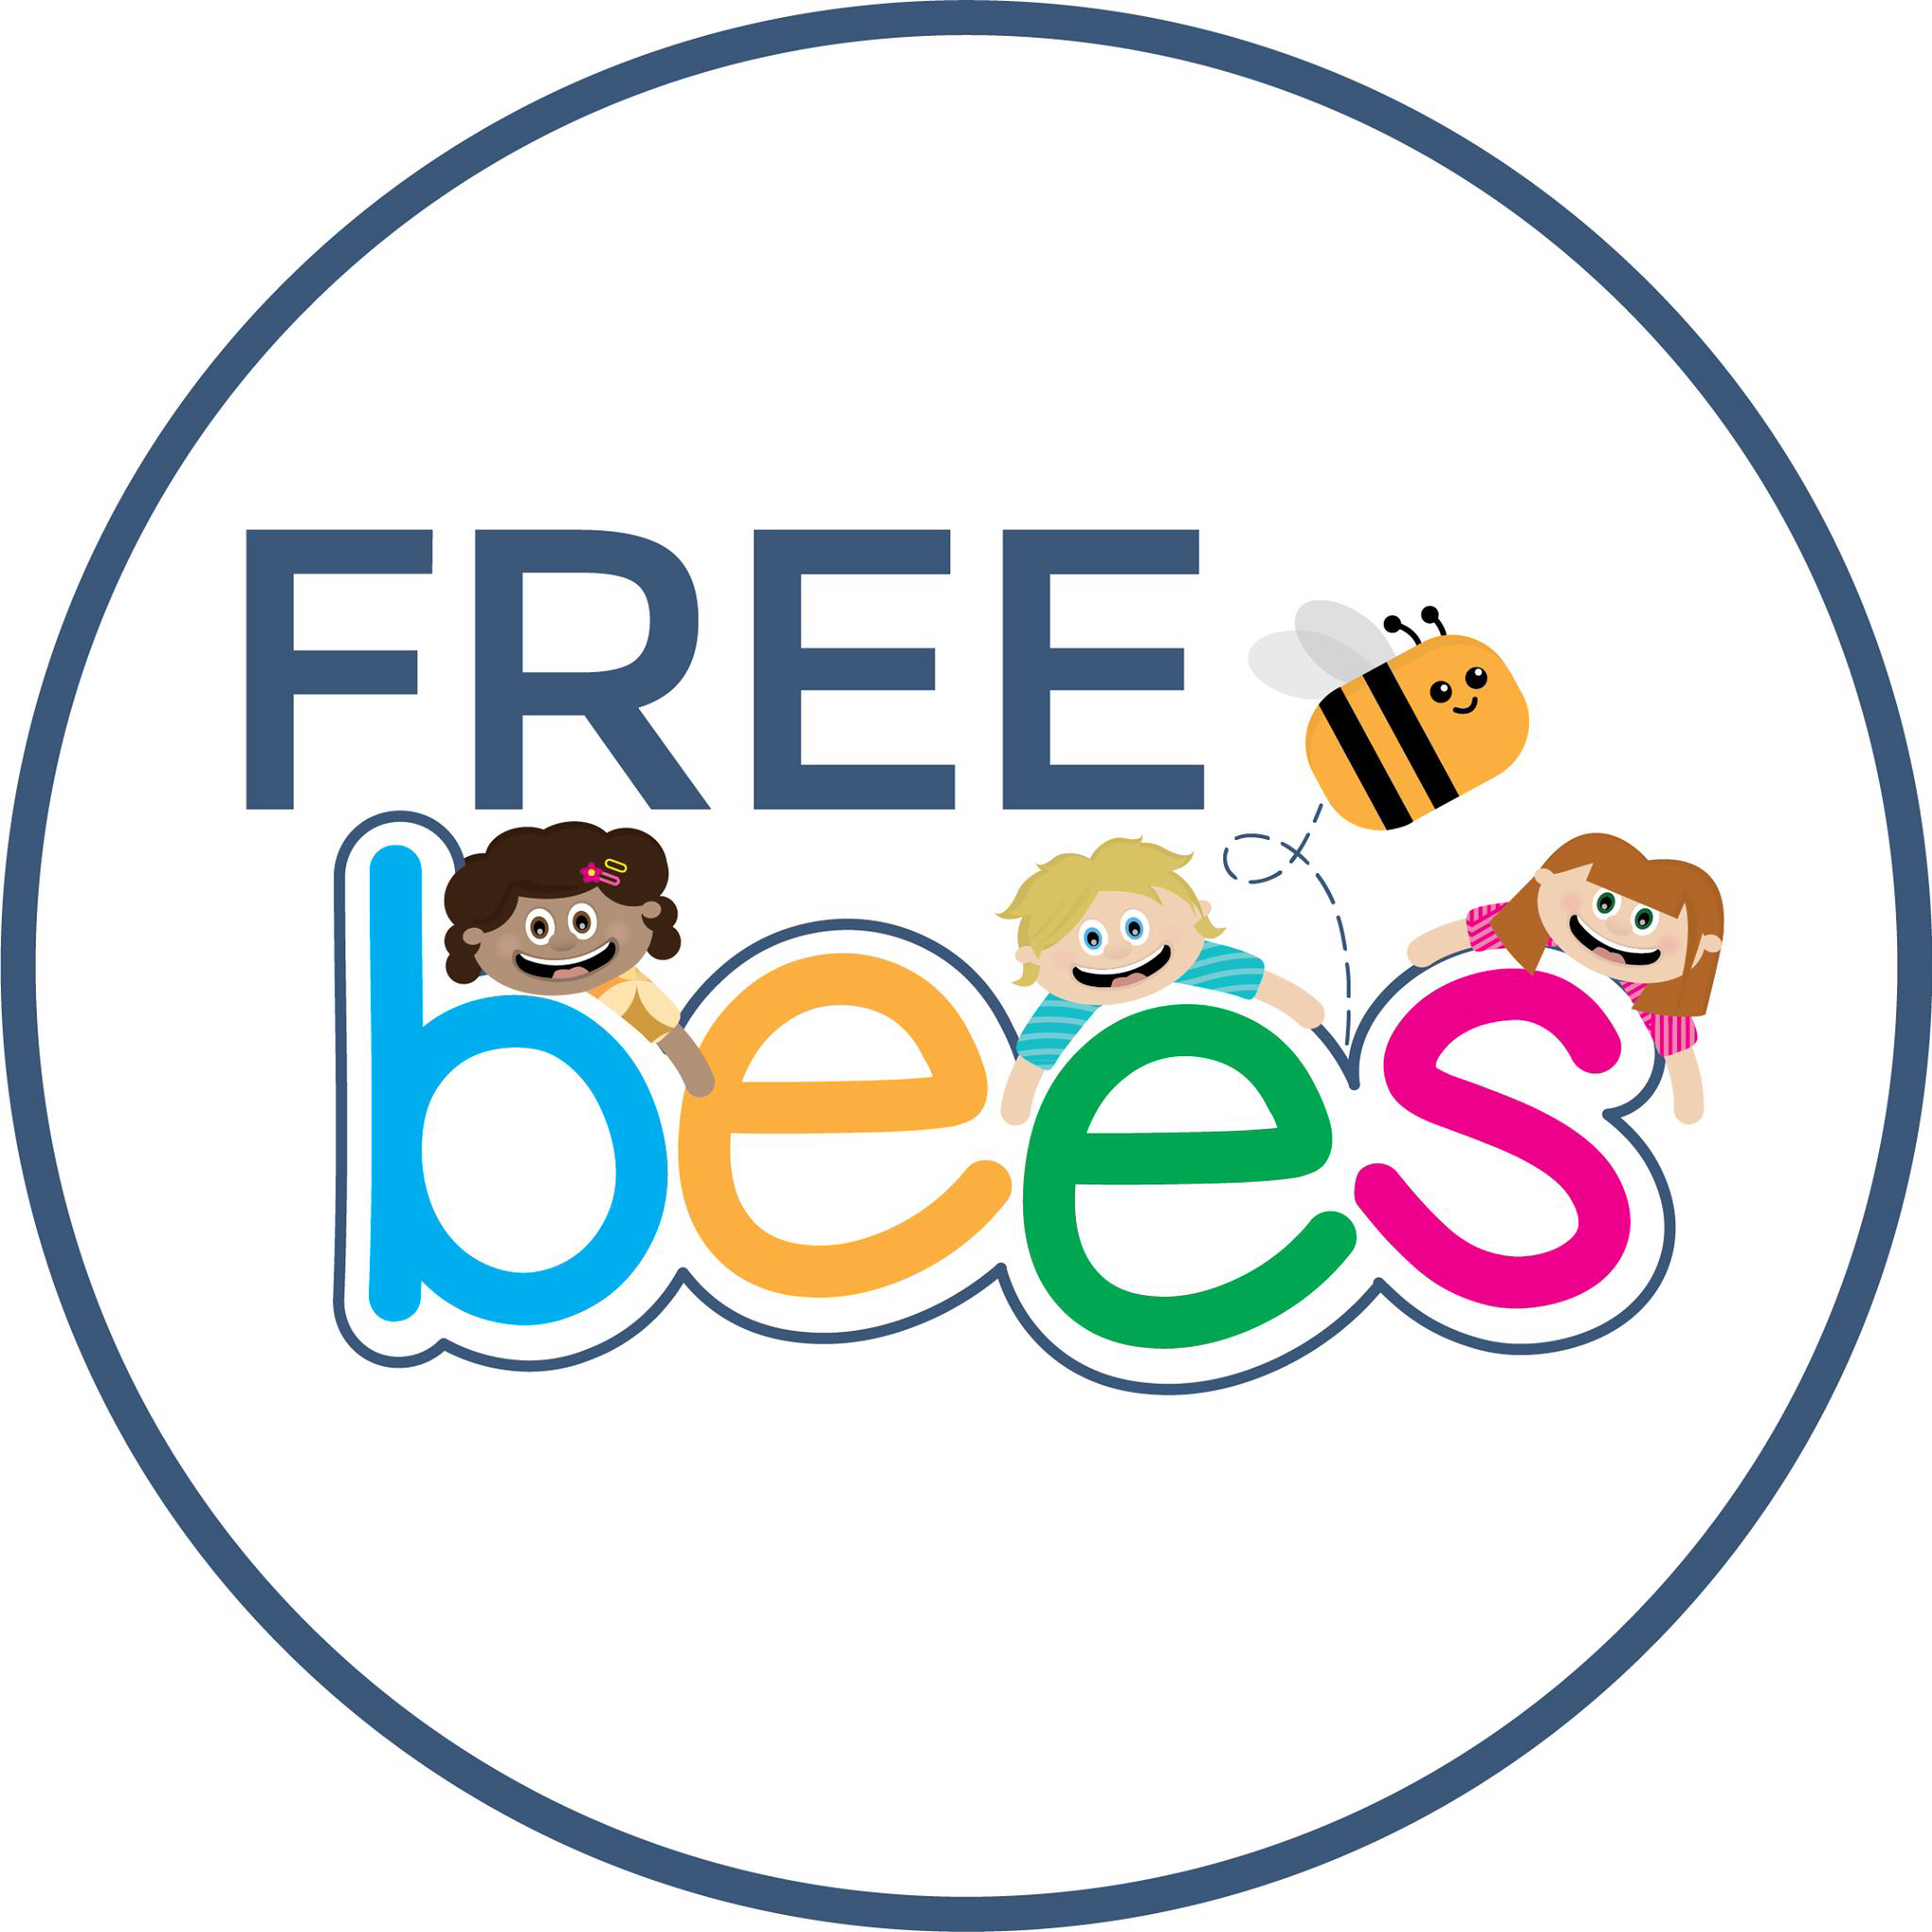 Every Thursday in Term time 10am to midday FreeBees our group for toddlers/pre schoolers and their carers